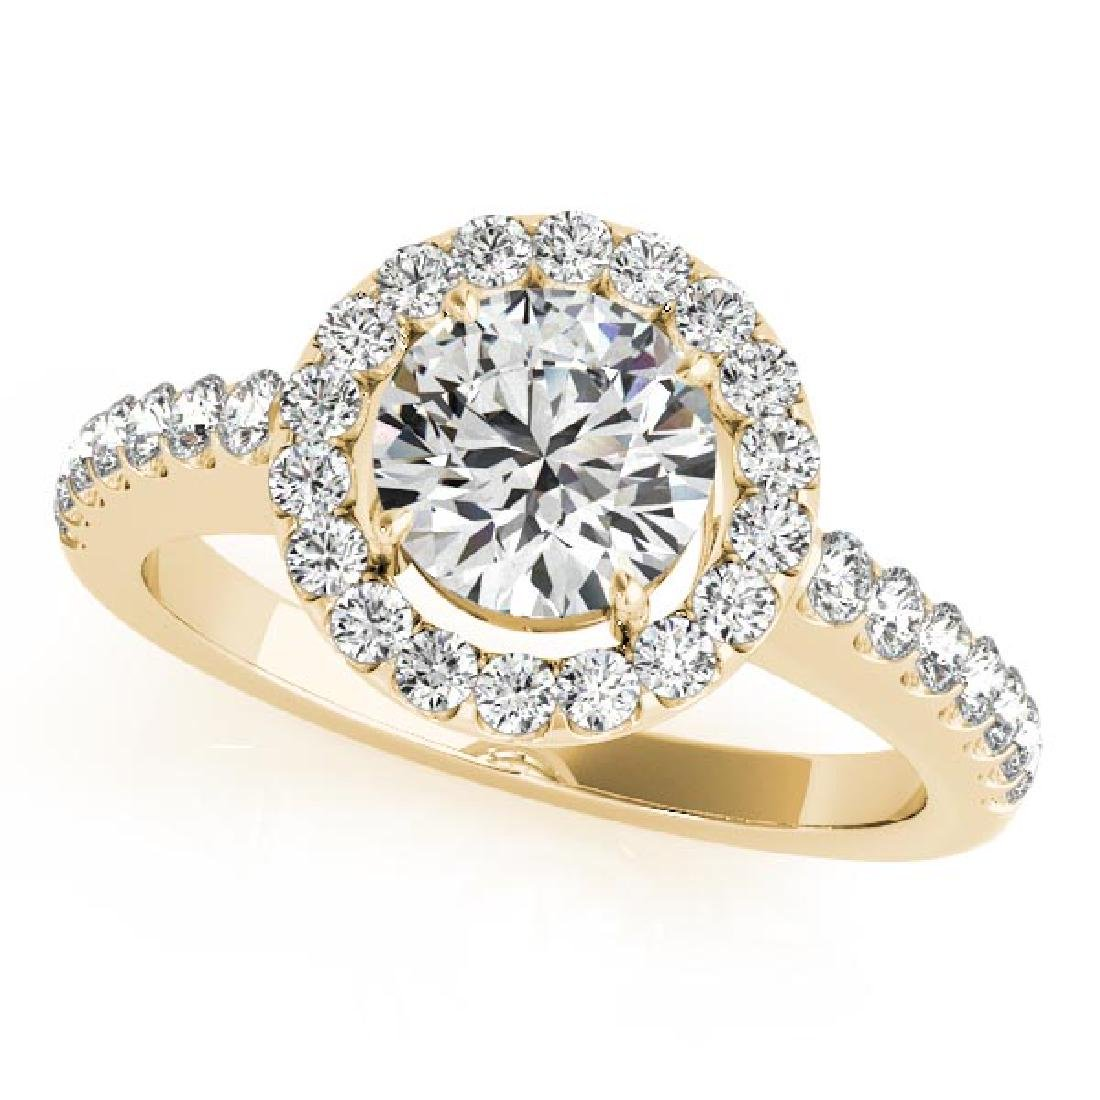 CERTIFIED 18K YELLOW GOLD 1.03 CT G-H/VS-SI1 DIAMOND HA